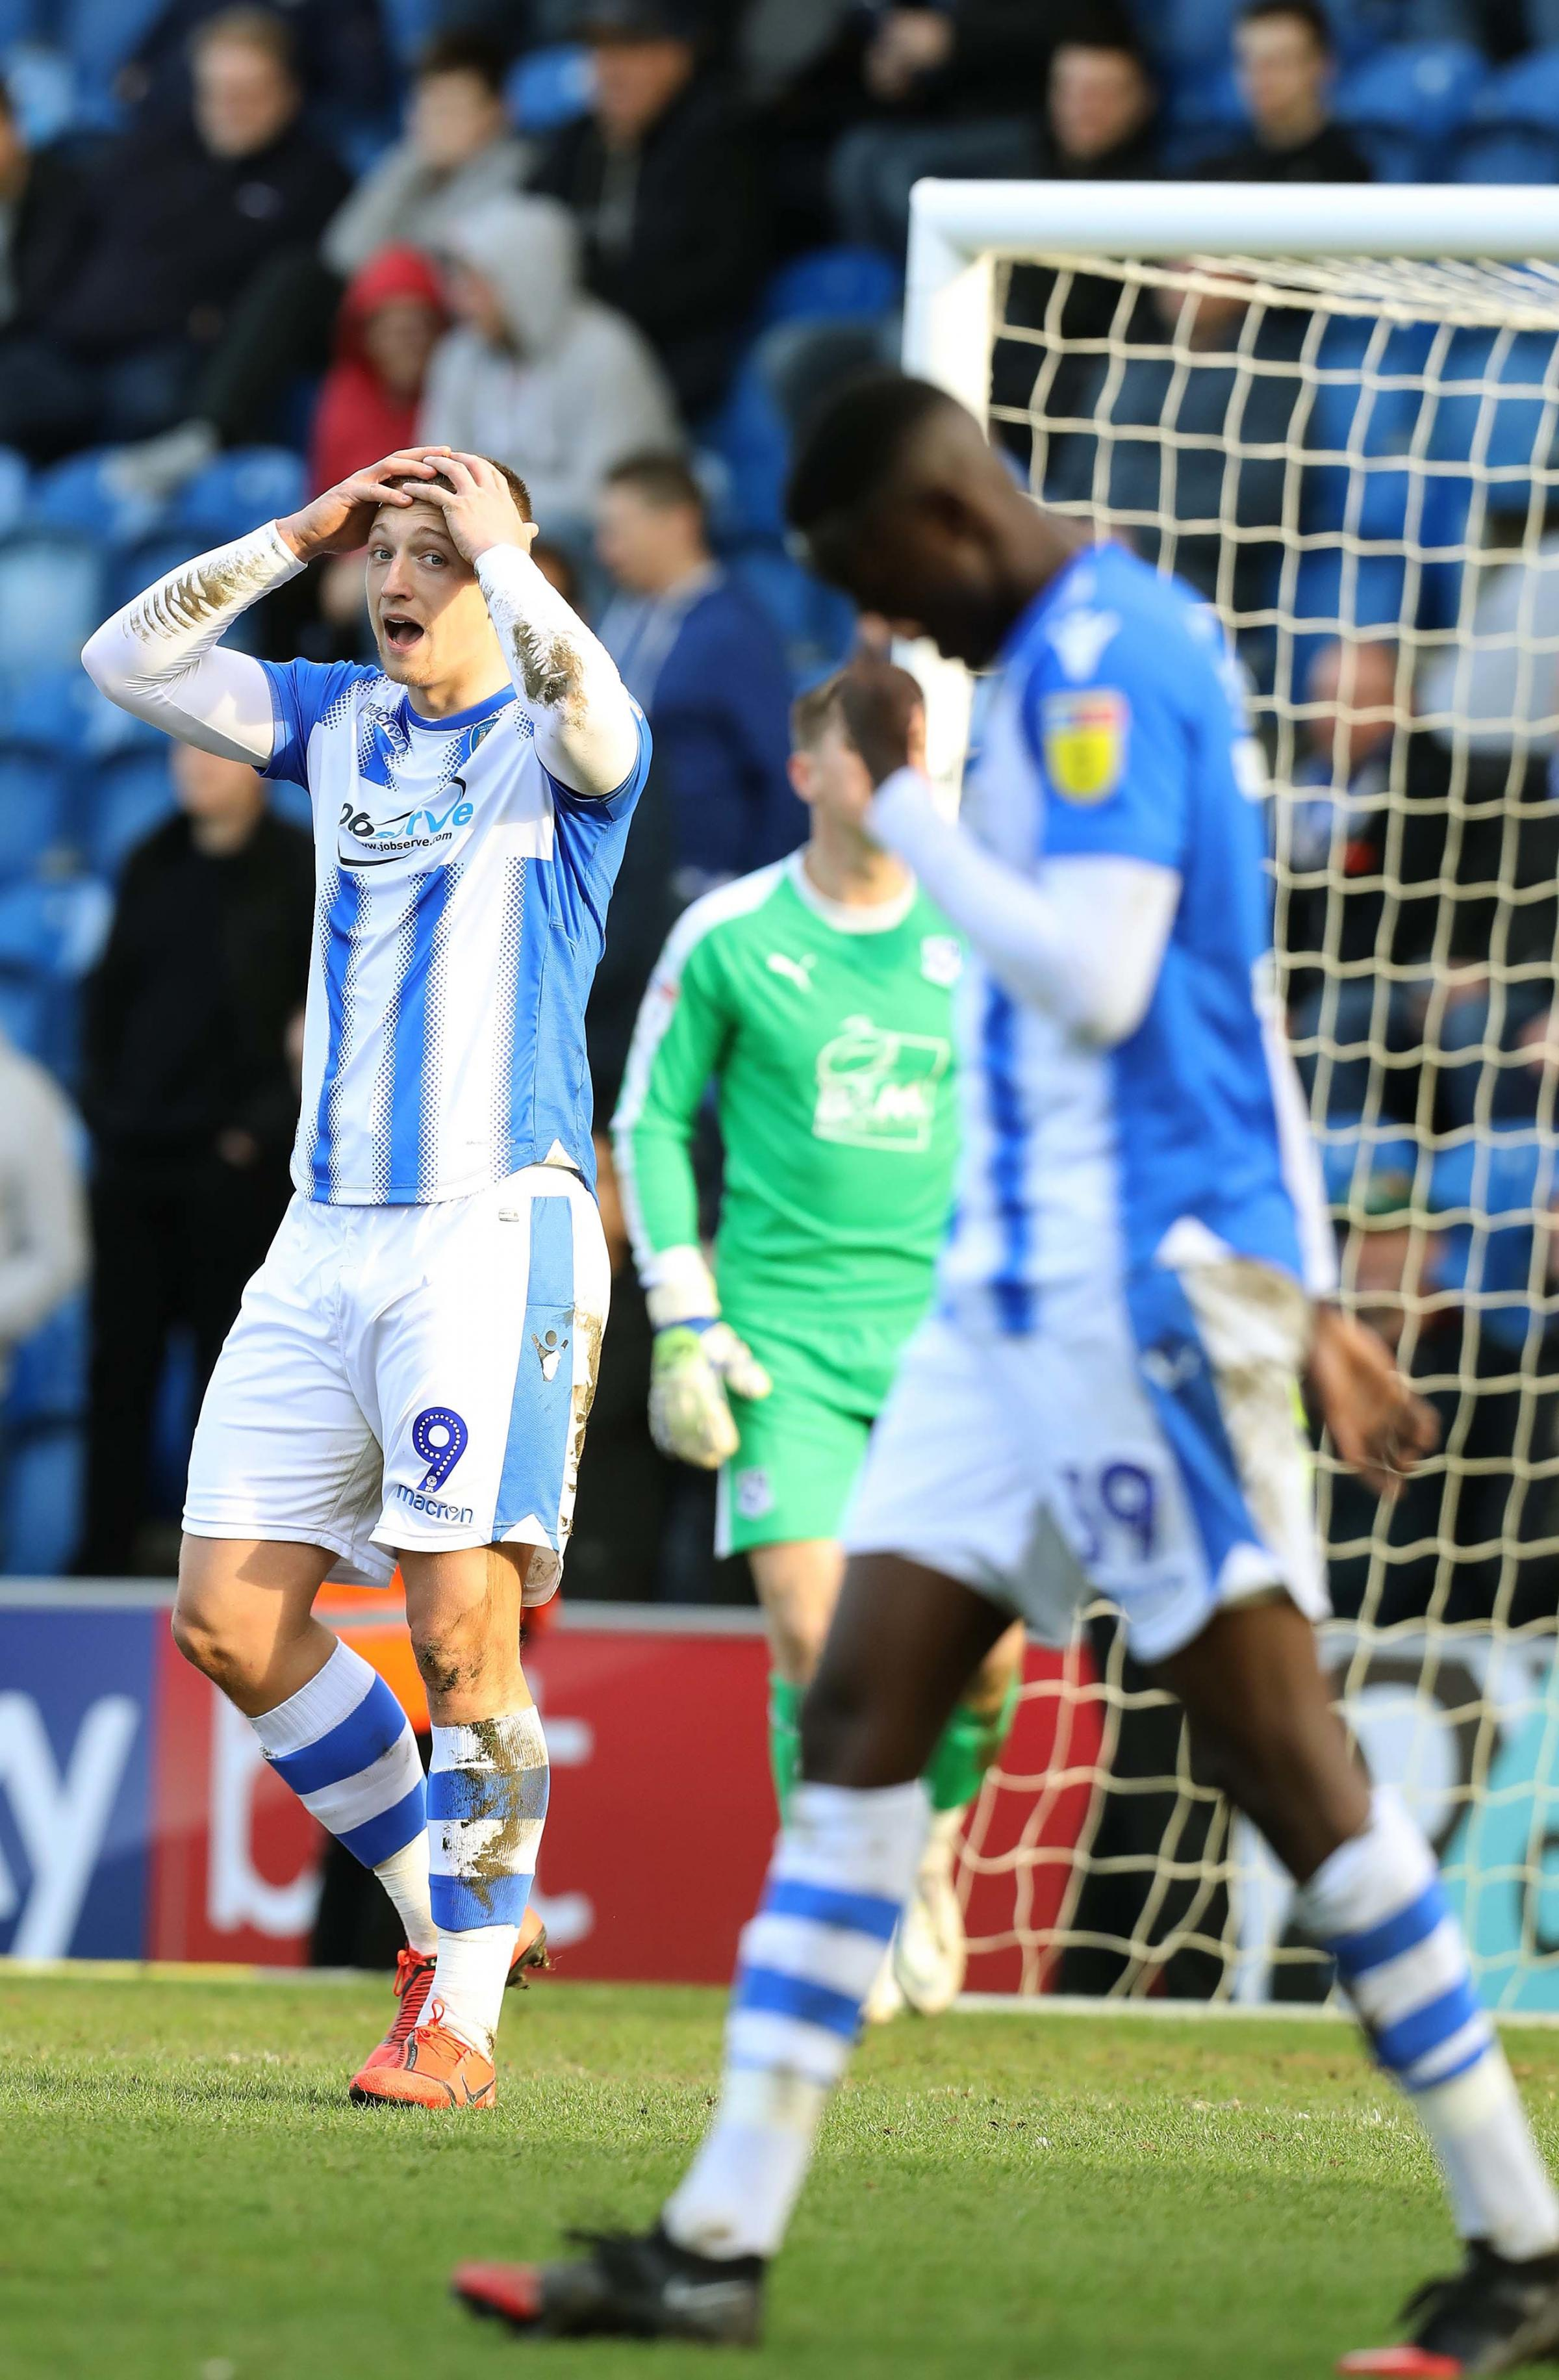 Disbelief - Colchester United striker Luke Norris can't believe it after a chance goes begging against Tranmere Rovers Picture: STEVE BRADING